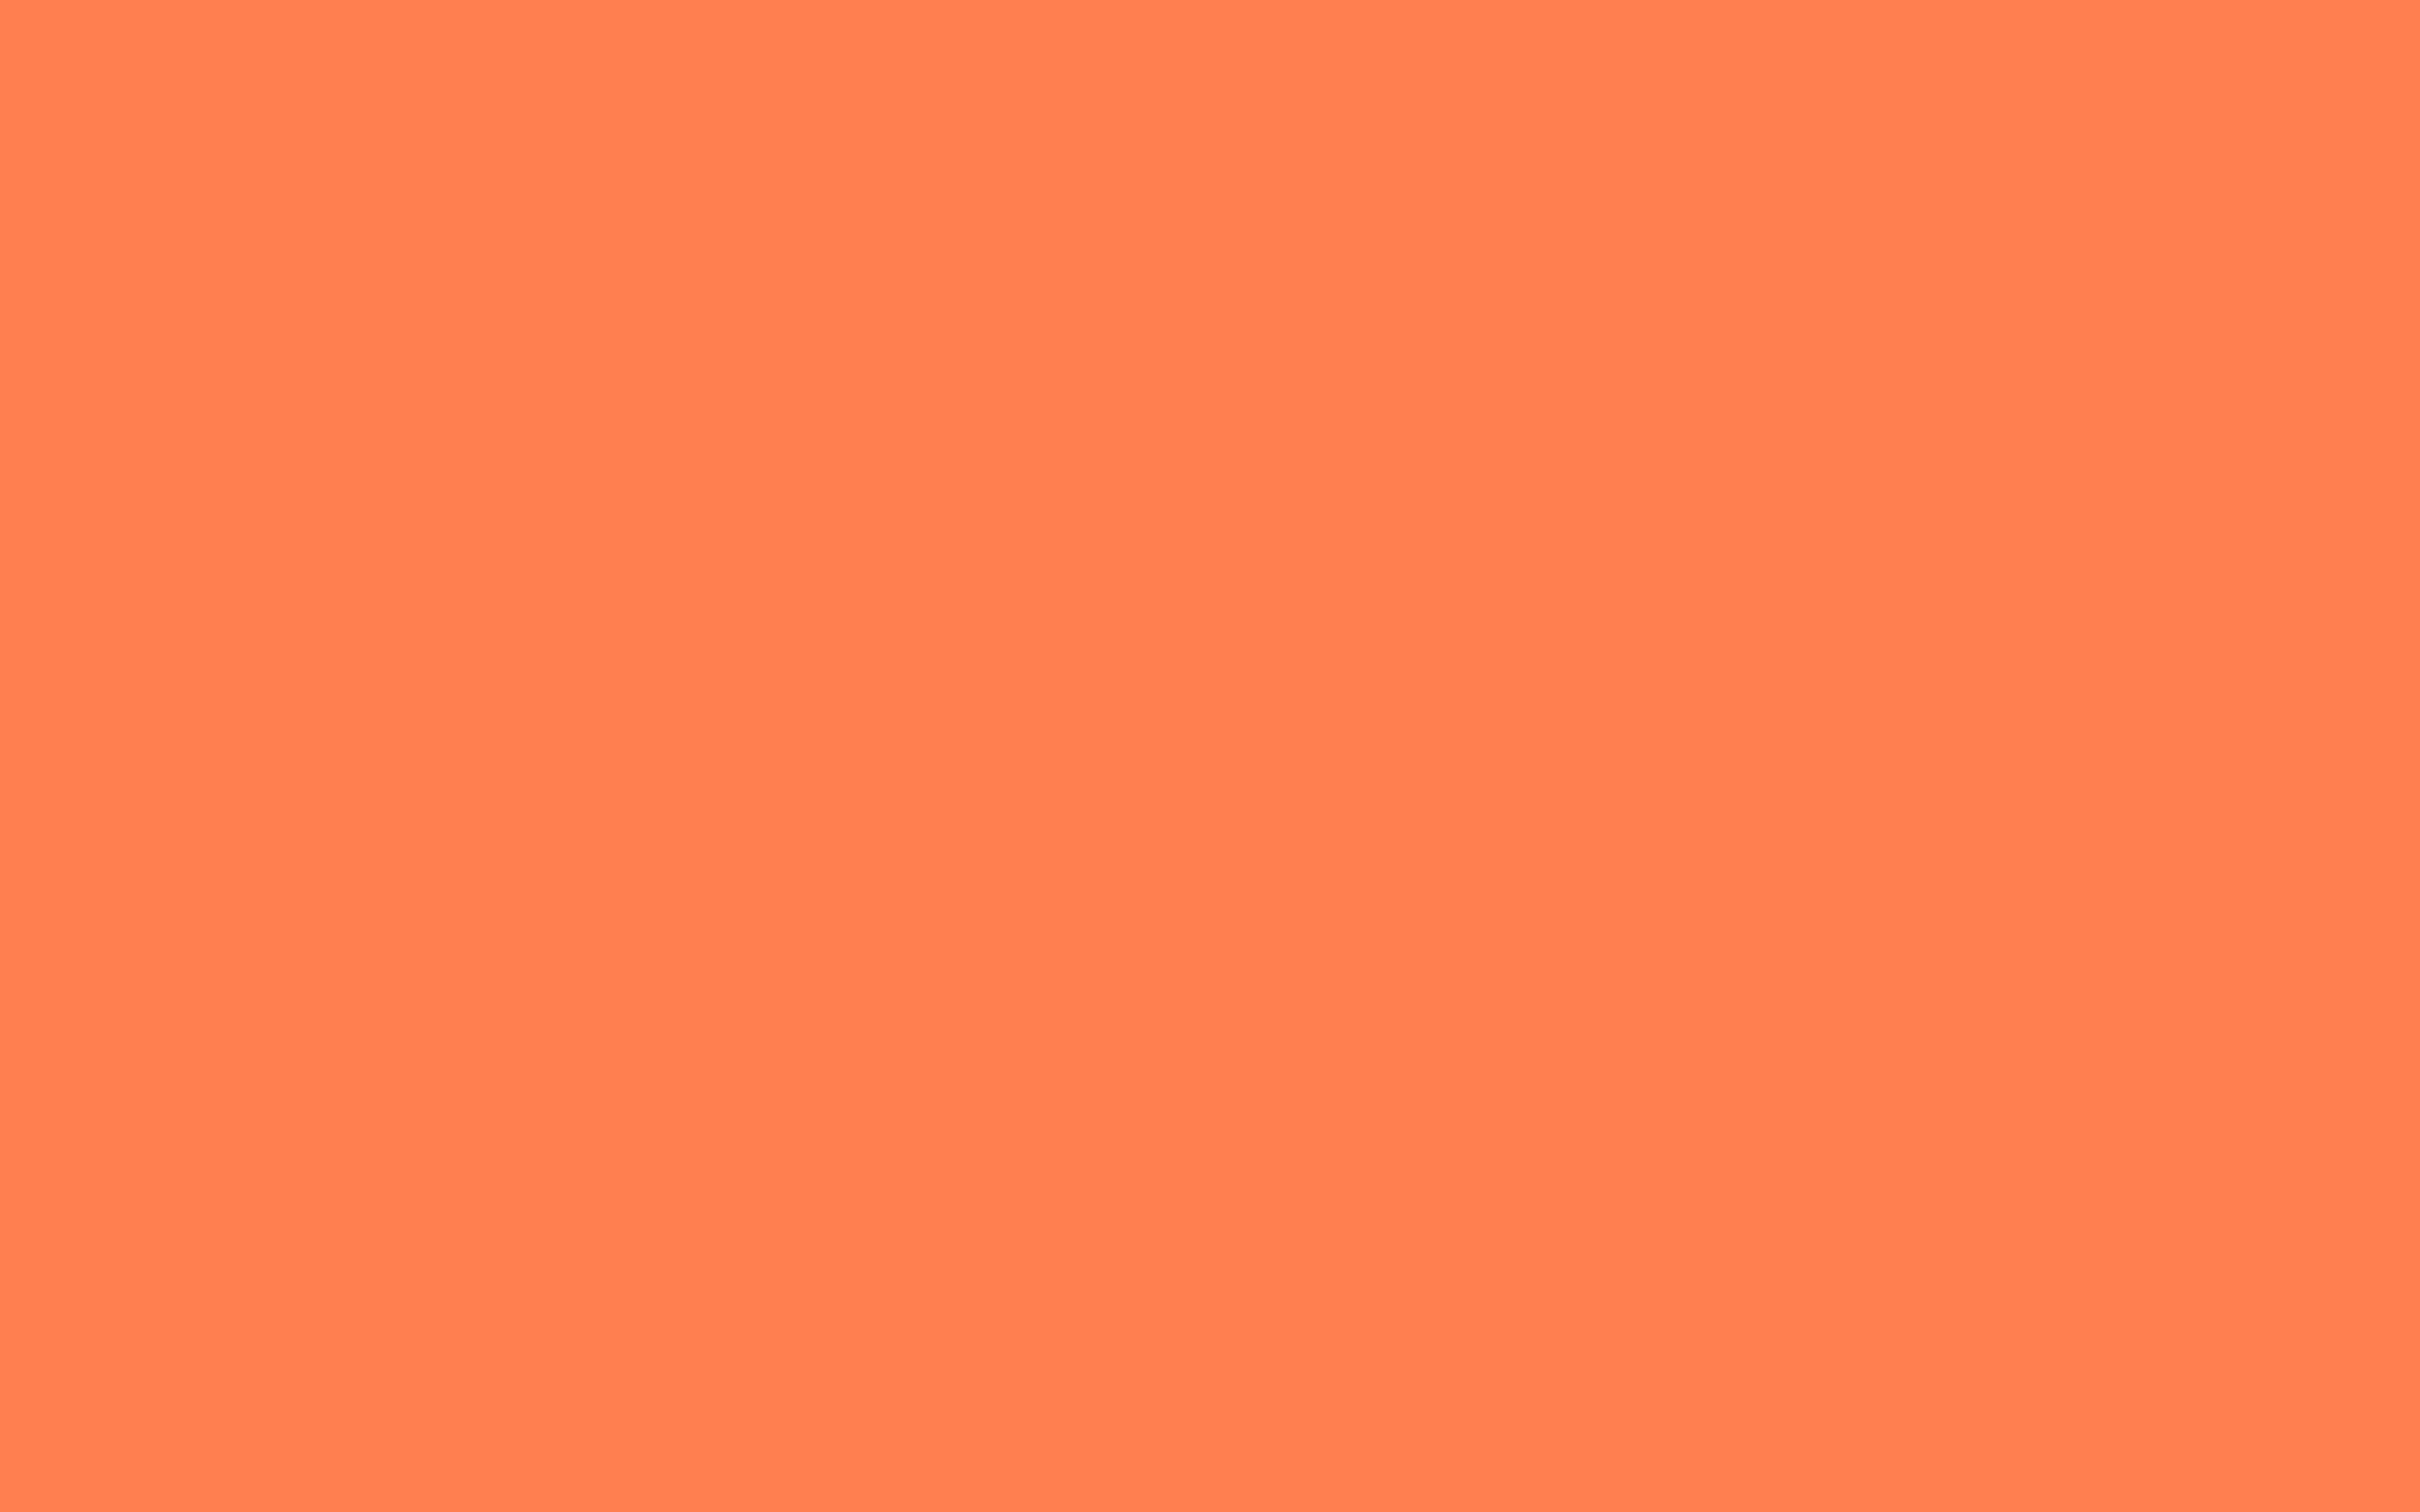 2560x1600 coral solid color background